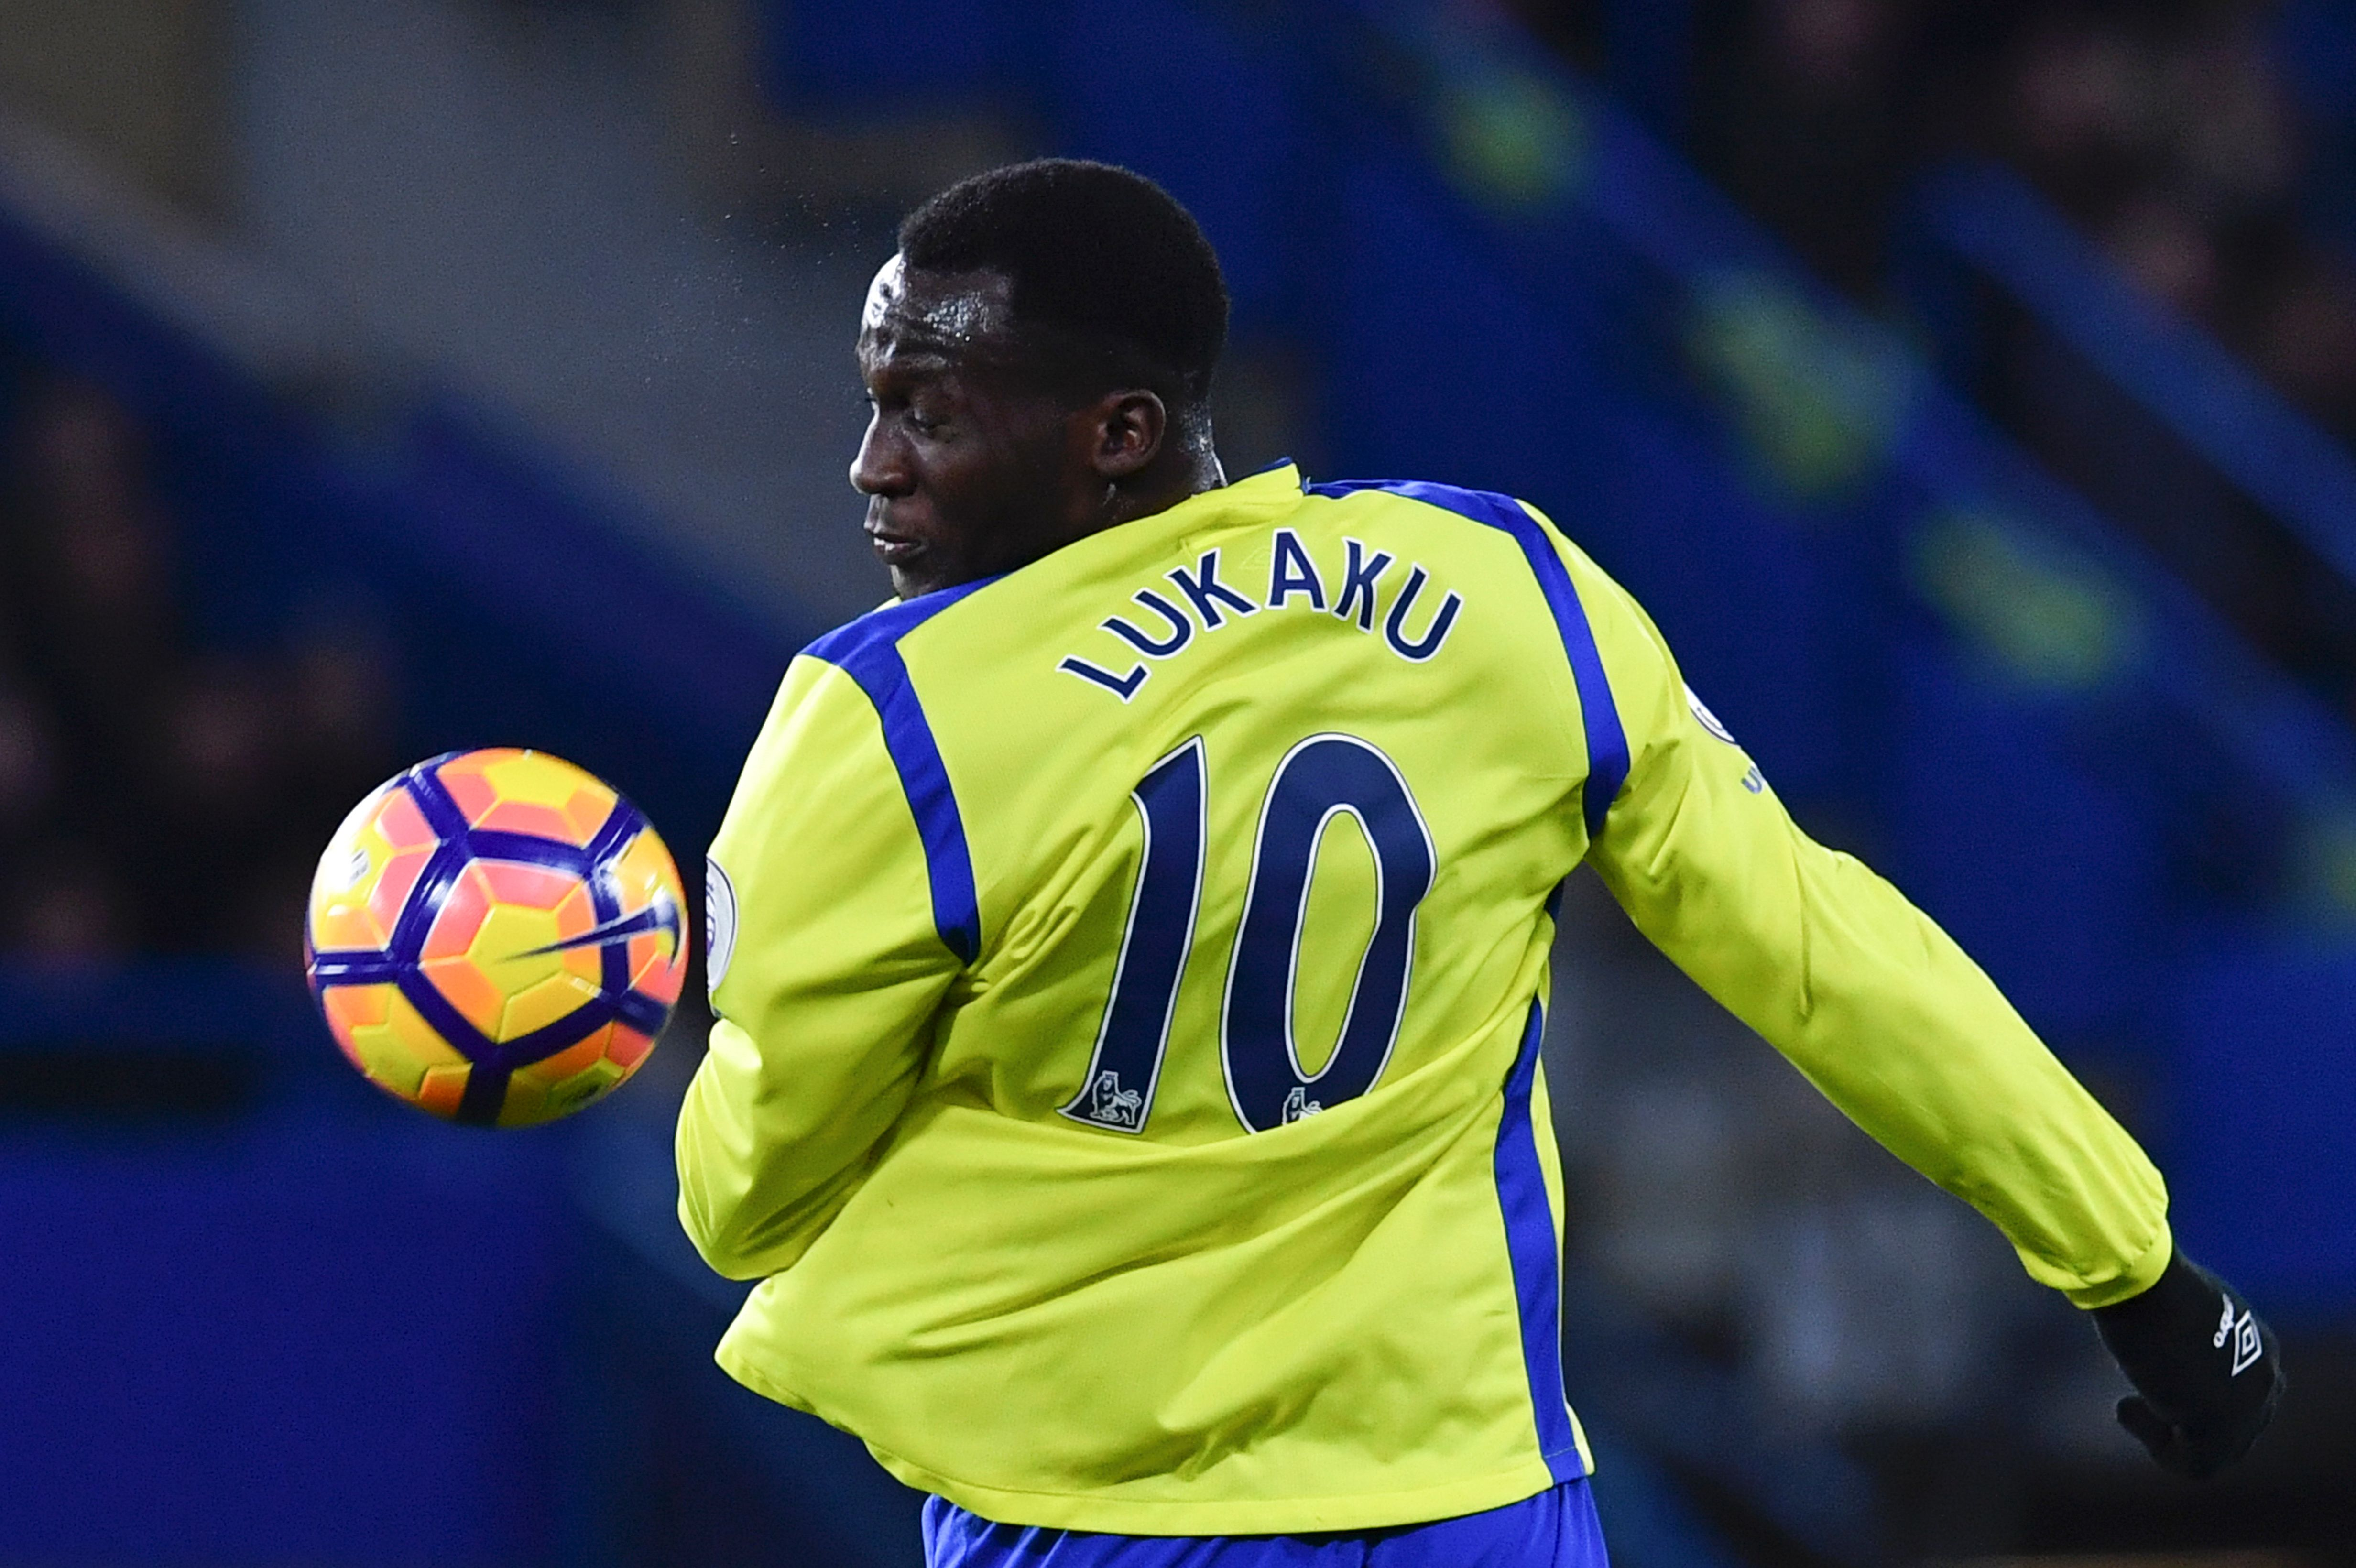 Everton's Belgian striker Romelu Lukaku heads the ball during the English Premier League football match between Chelsea and Everton at Stamford Bridge in London on November 5, 2016. / AFP / Ben STANSALL / RESTRICTED TO EDITORIAL USE. No use with unauthorized audio, video, data, fixture lists, club/league logos or 'live' services. Online in-match use limited to 75 images, no video emulation. No use in betting, games or single club/league/player publications. / (Photo credit should read BEN STANSALL/AFP/Getty Images)